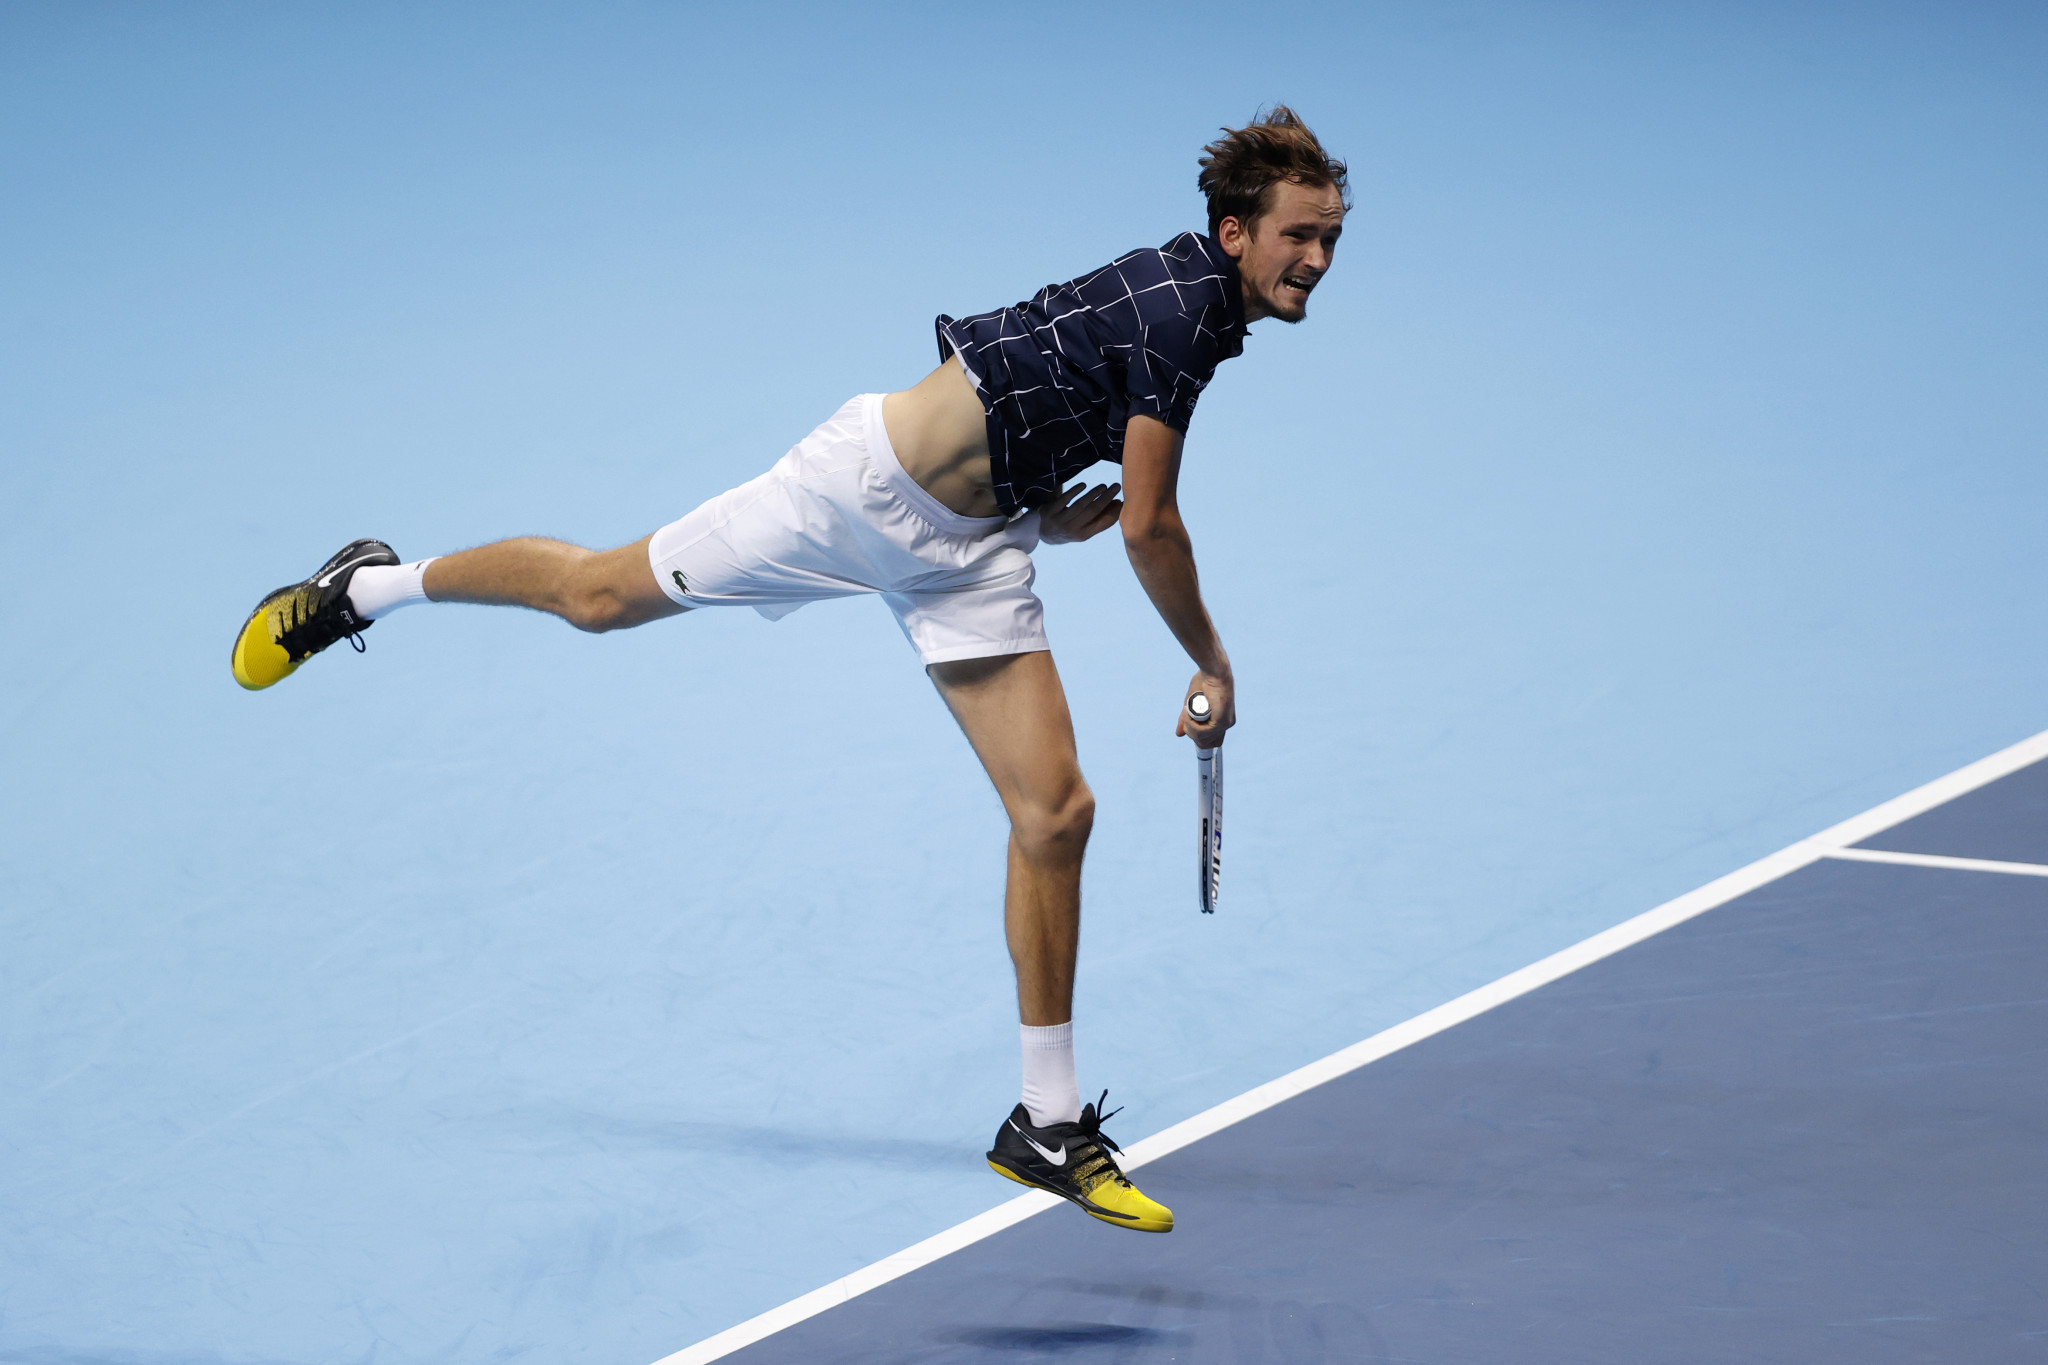 Daniil Medvedev was victorious in her first round-robin match at the ATP Finals, as he defeated Alex Zverev in a repeat of the Paris Masters final eight days previously ©Getty Images